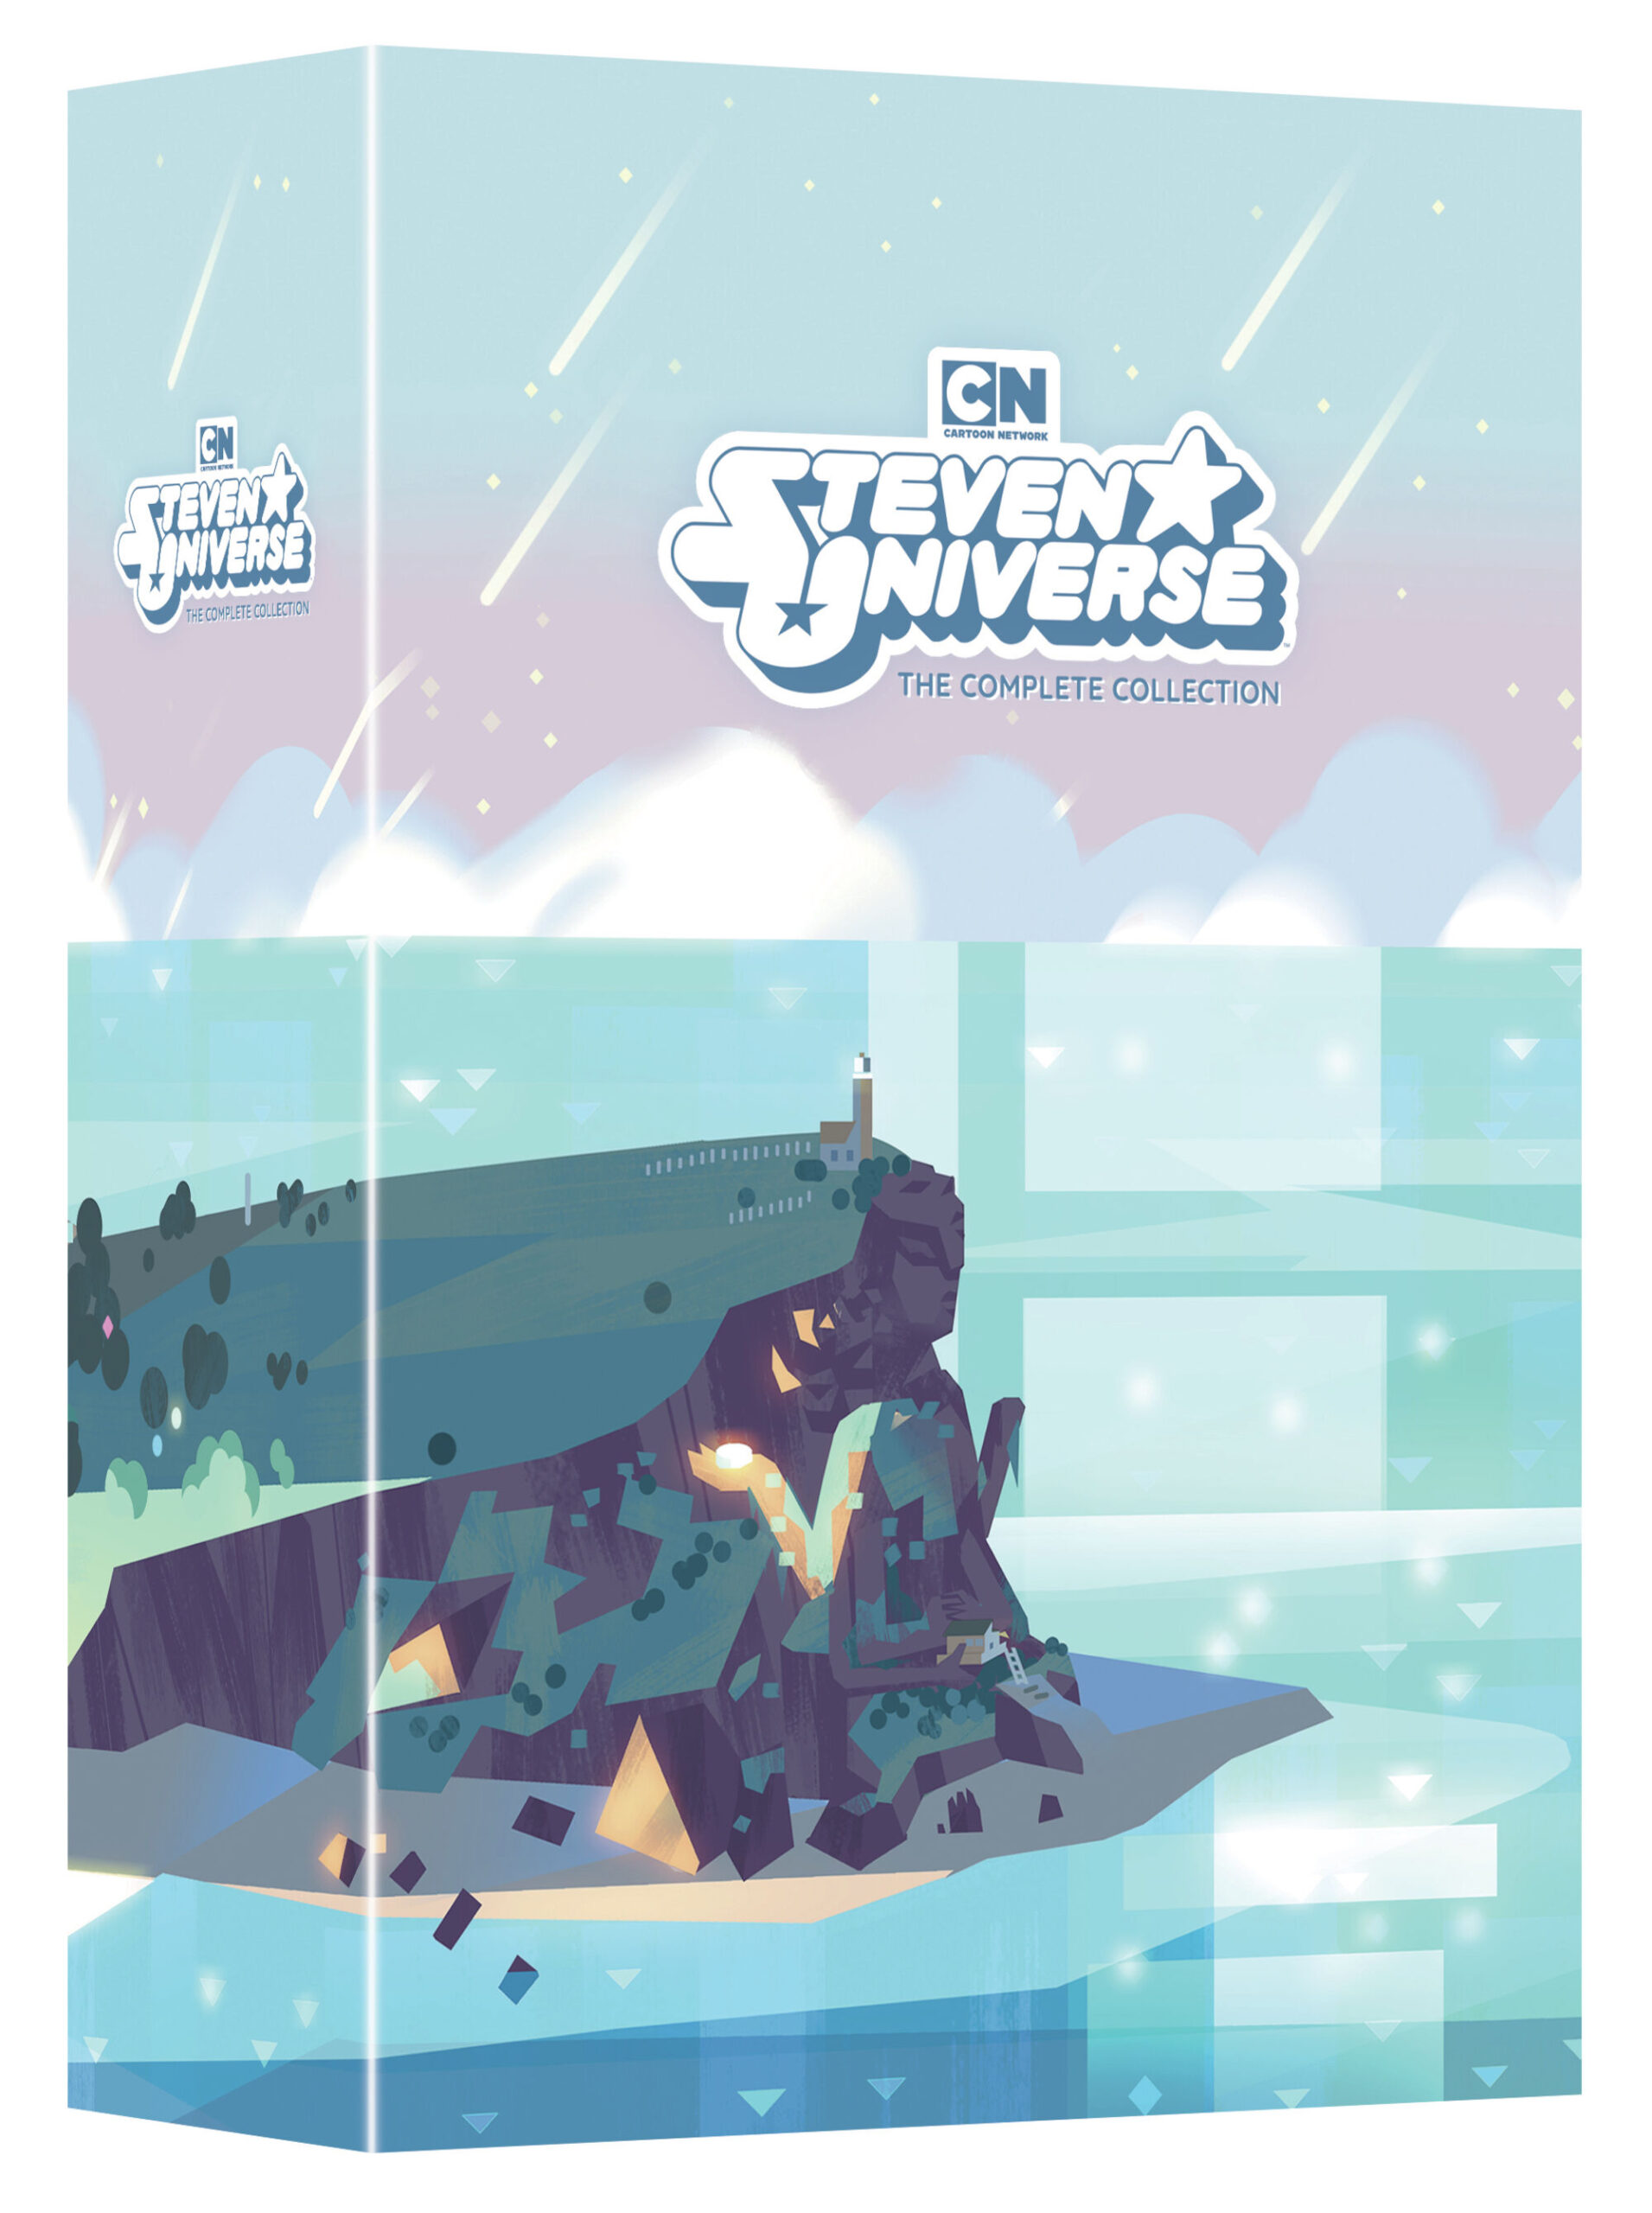 Steven Universe The Complete Collection Available to Purchase Now